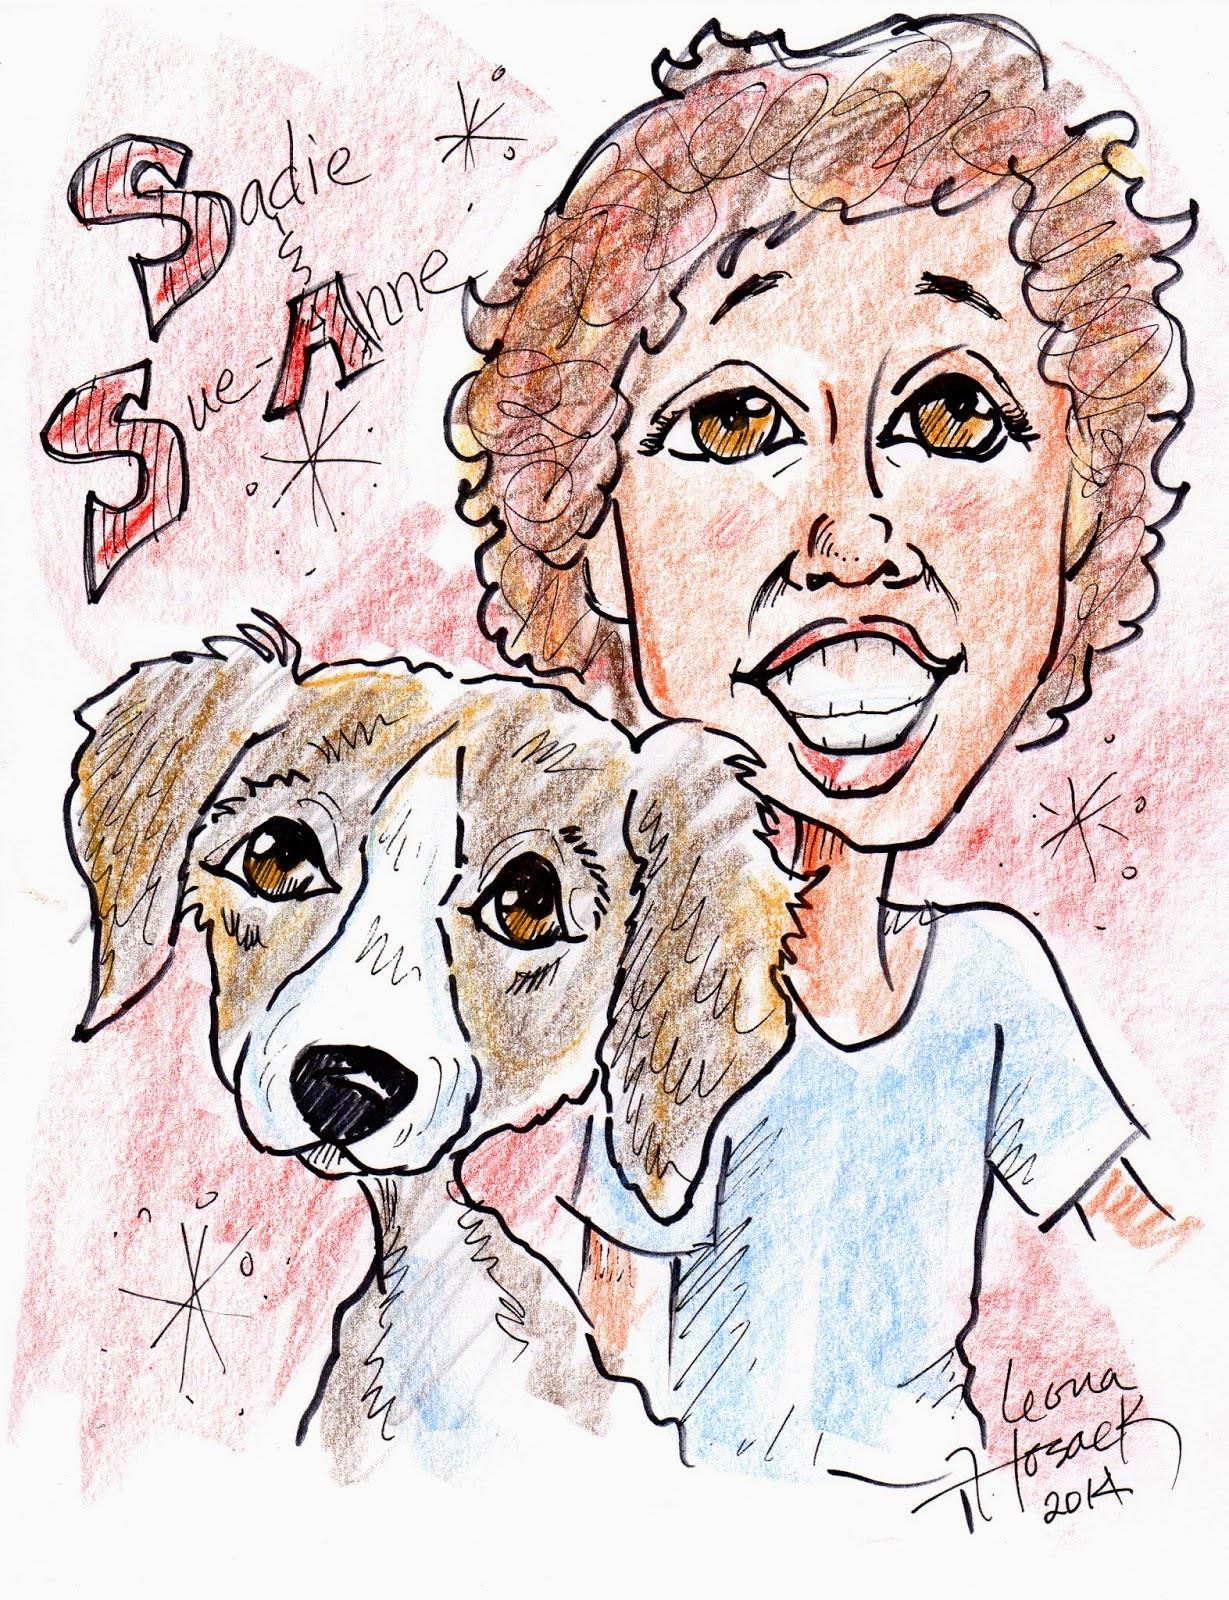 Pet and their owners caricature by Leona Hosack